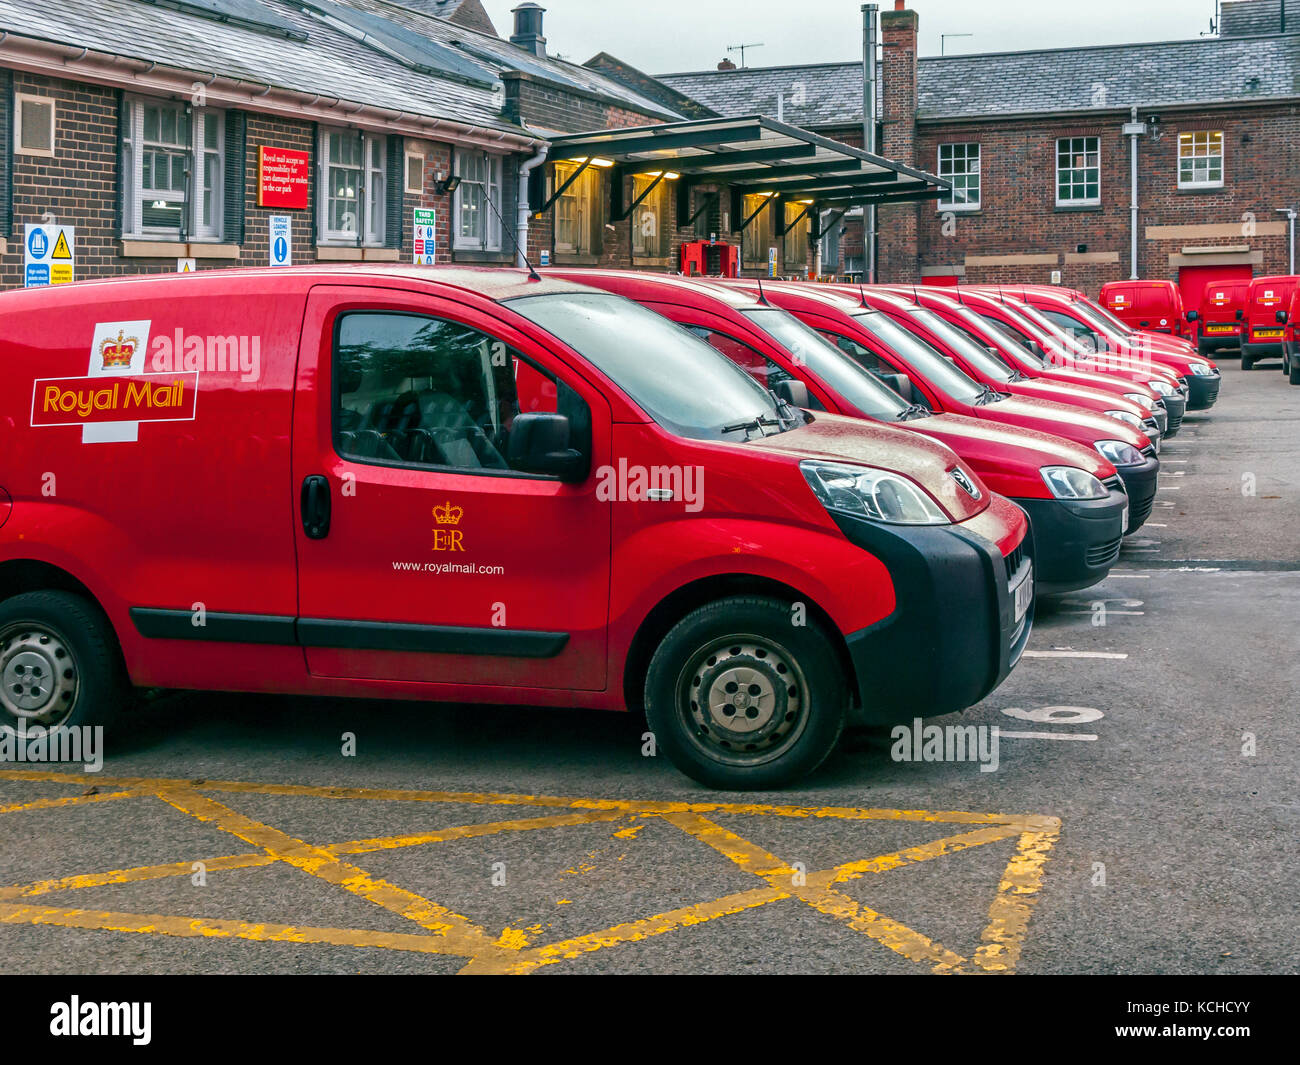 Line of Red Royal Mail Vans In Depot - Stock Image